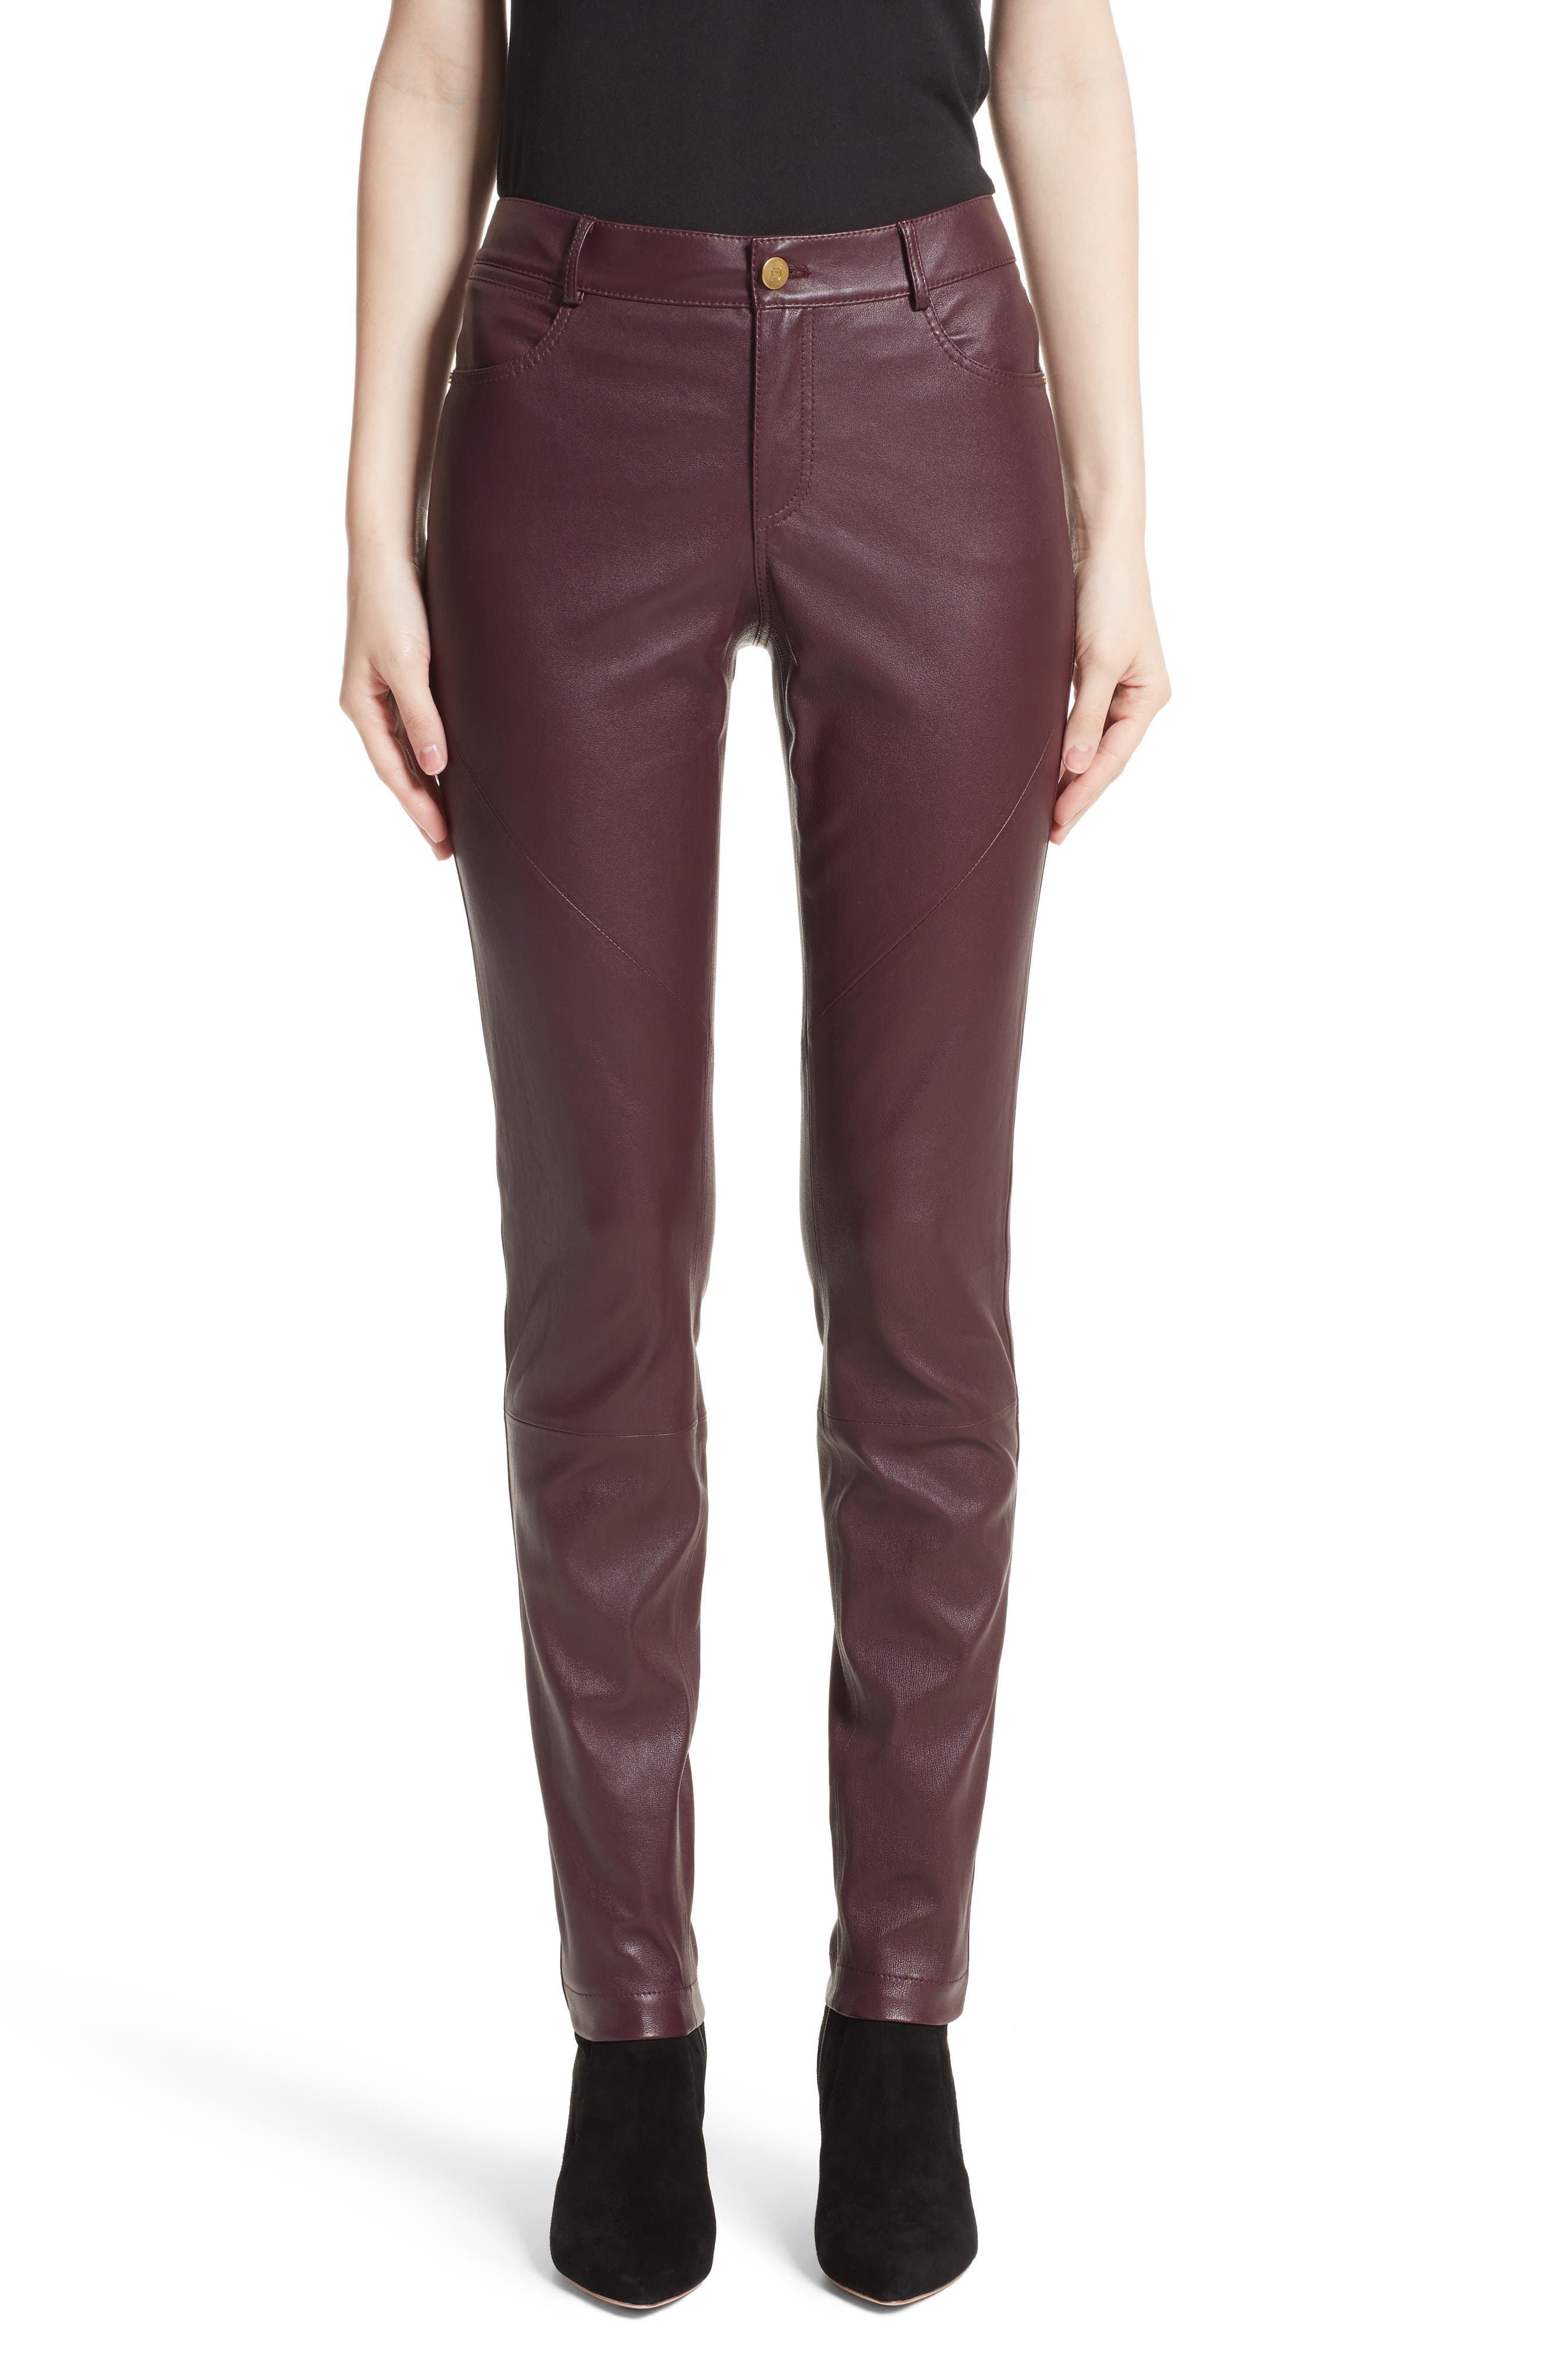 Lafayette 148 New York Mercer Nappa Leather Pants